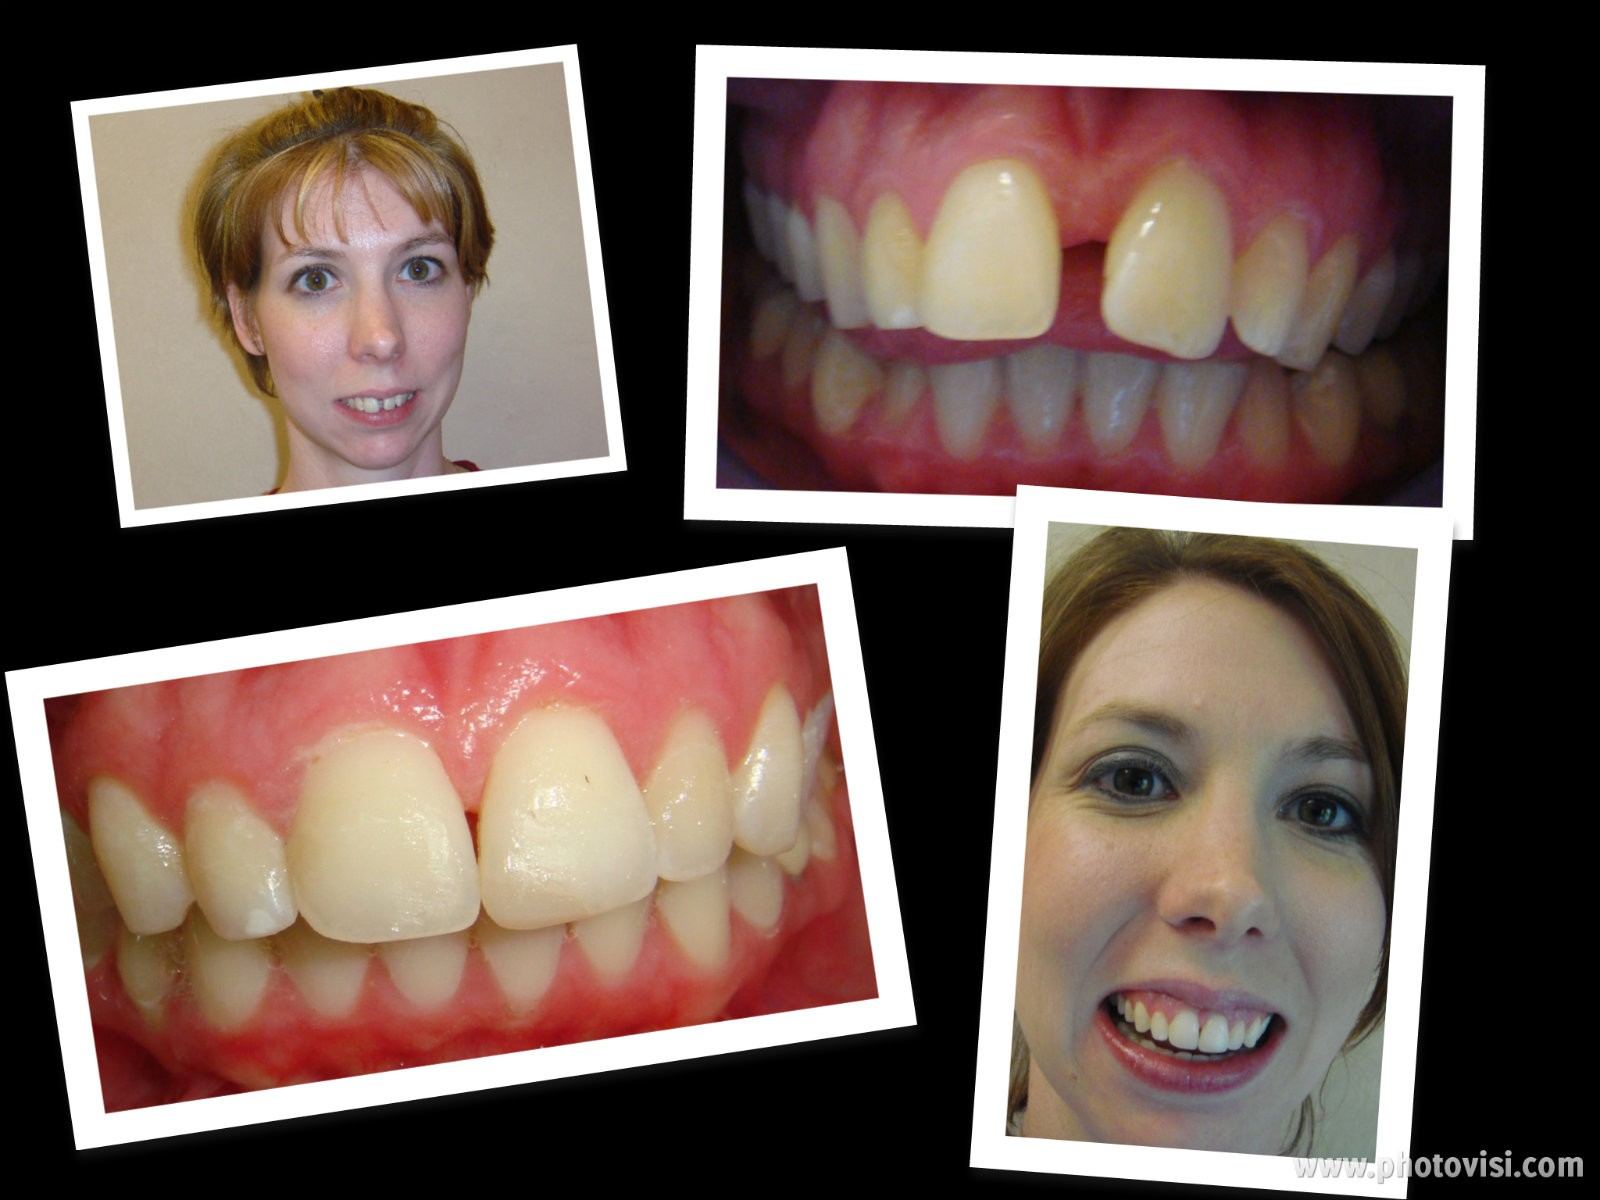 Invisalign Before & After - Advanced Dental Care Quincy, IL